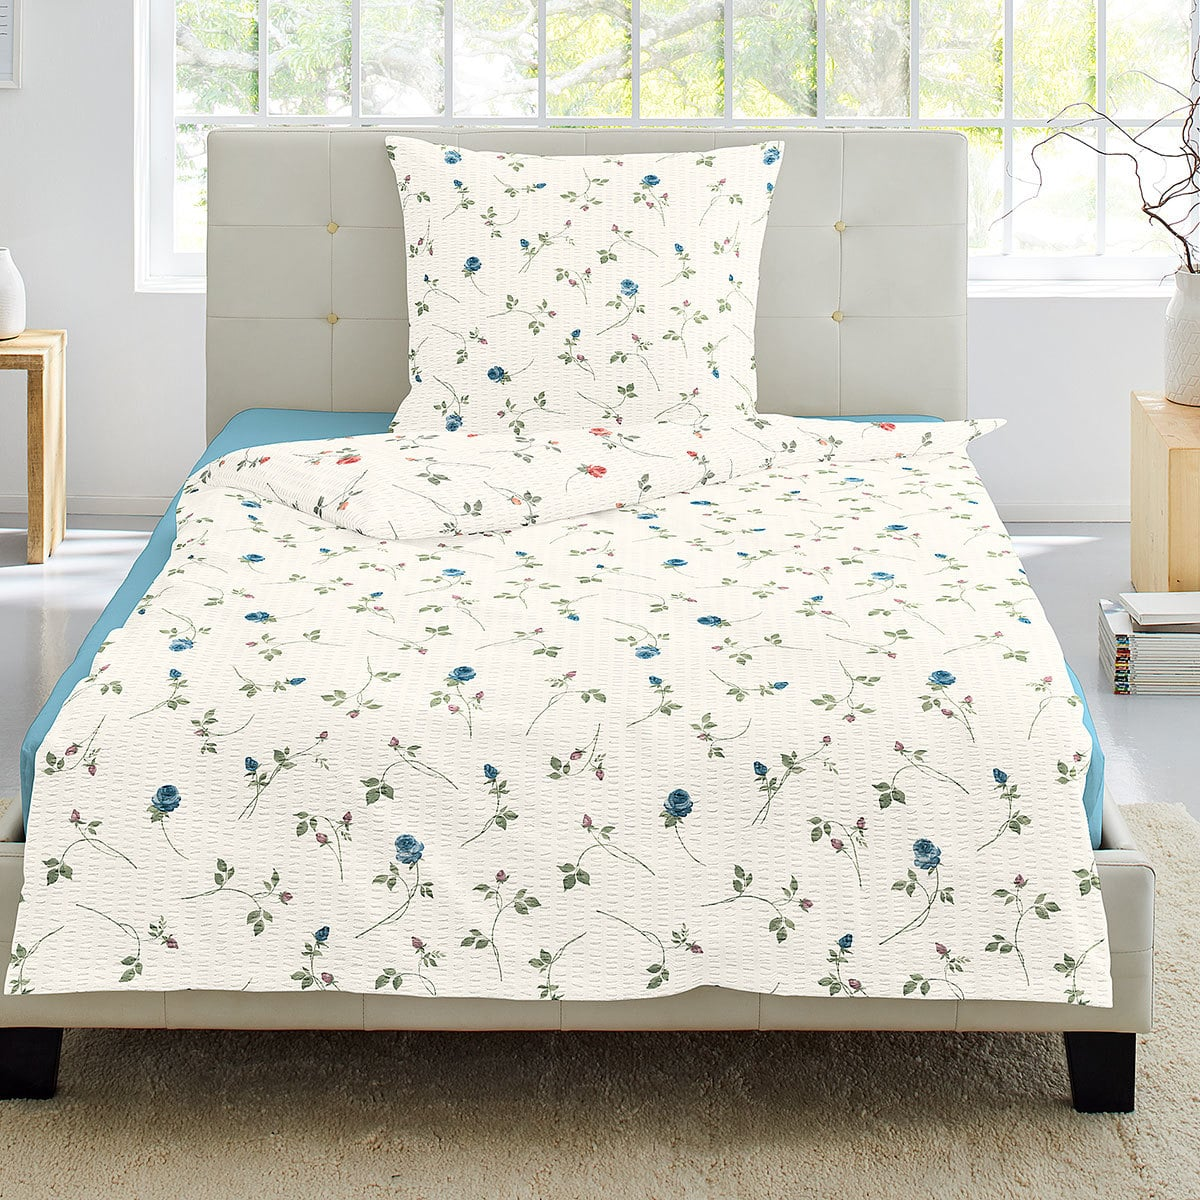 irisette seersucker bettw sche flower blau g nstig online kaufen bei bettwaren shop. Black Bedroom Furniture Sets. Home Design Ideas